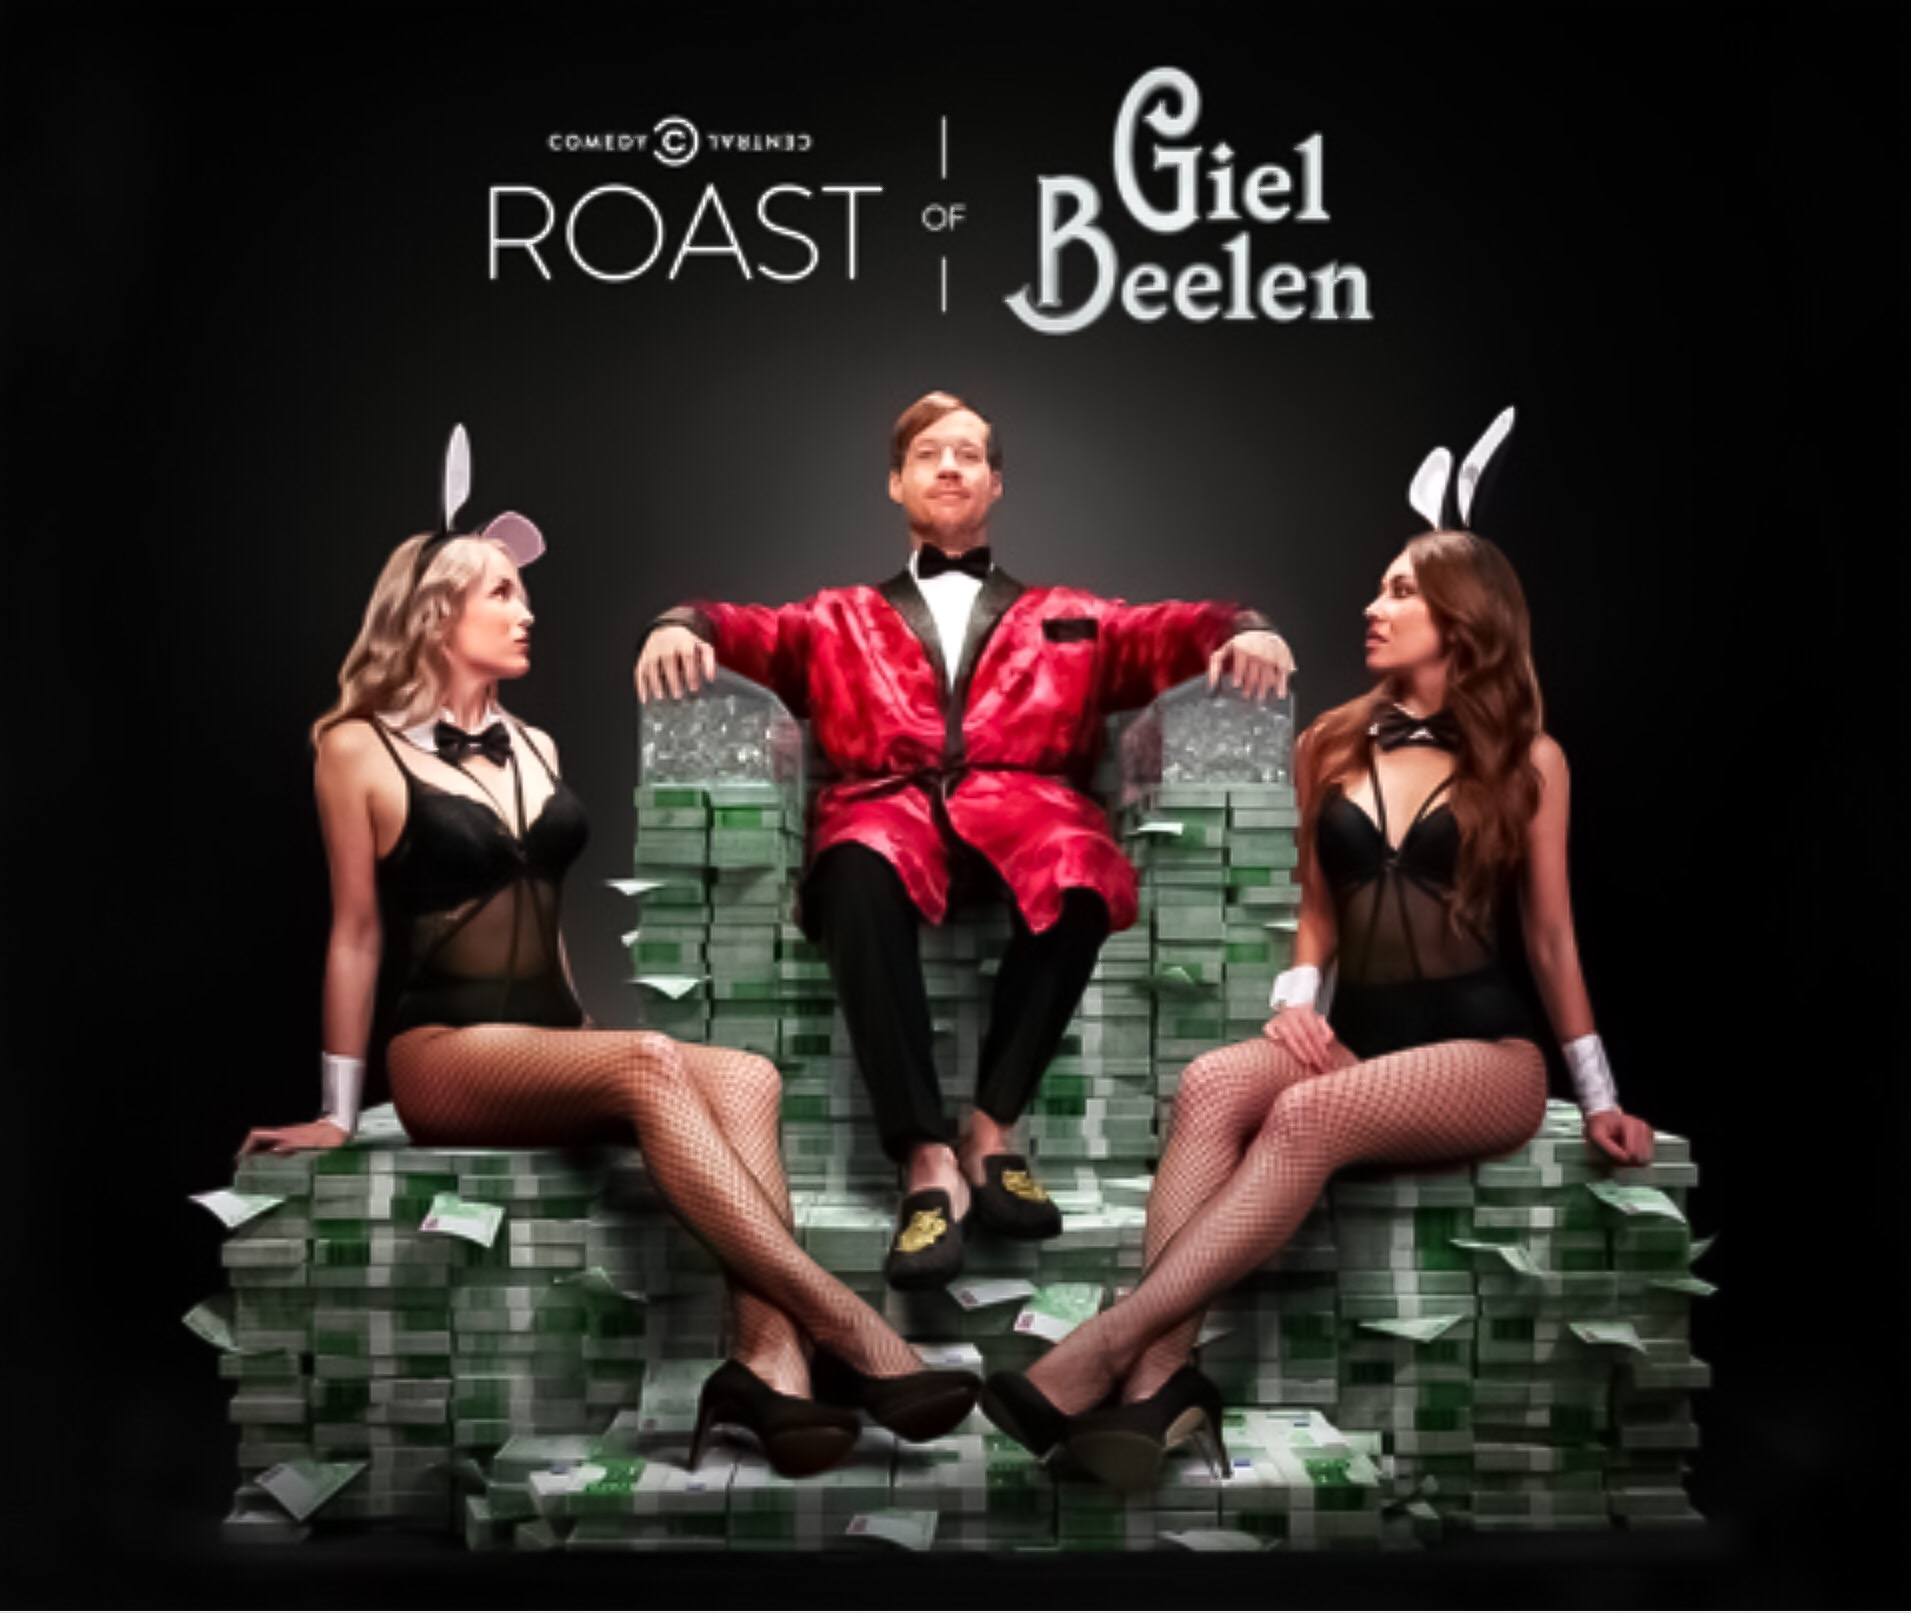 Comedy Central Roast Of Giel Beelen 2017 Imdb